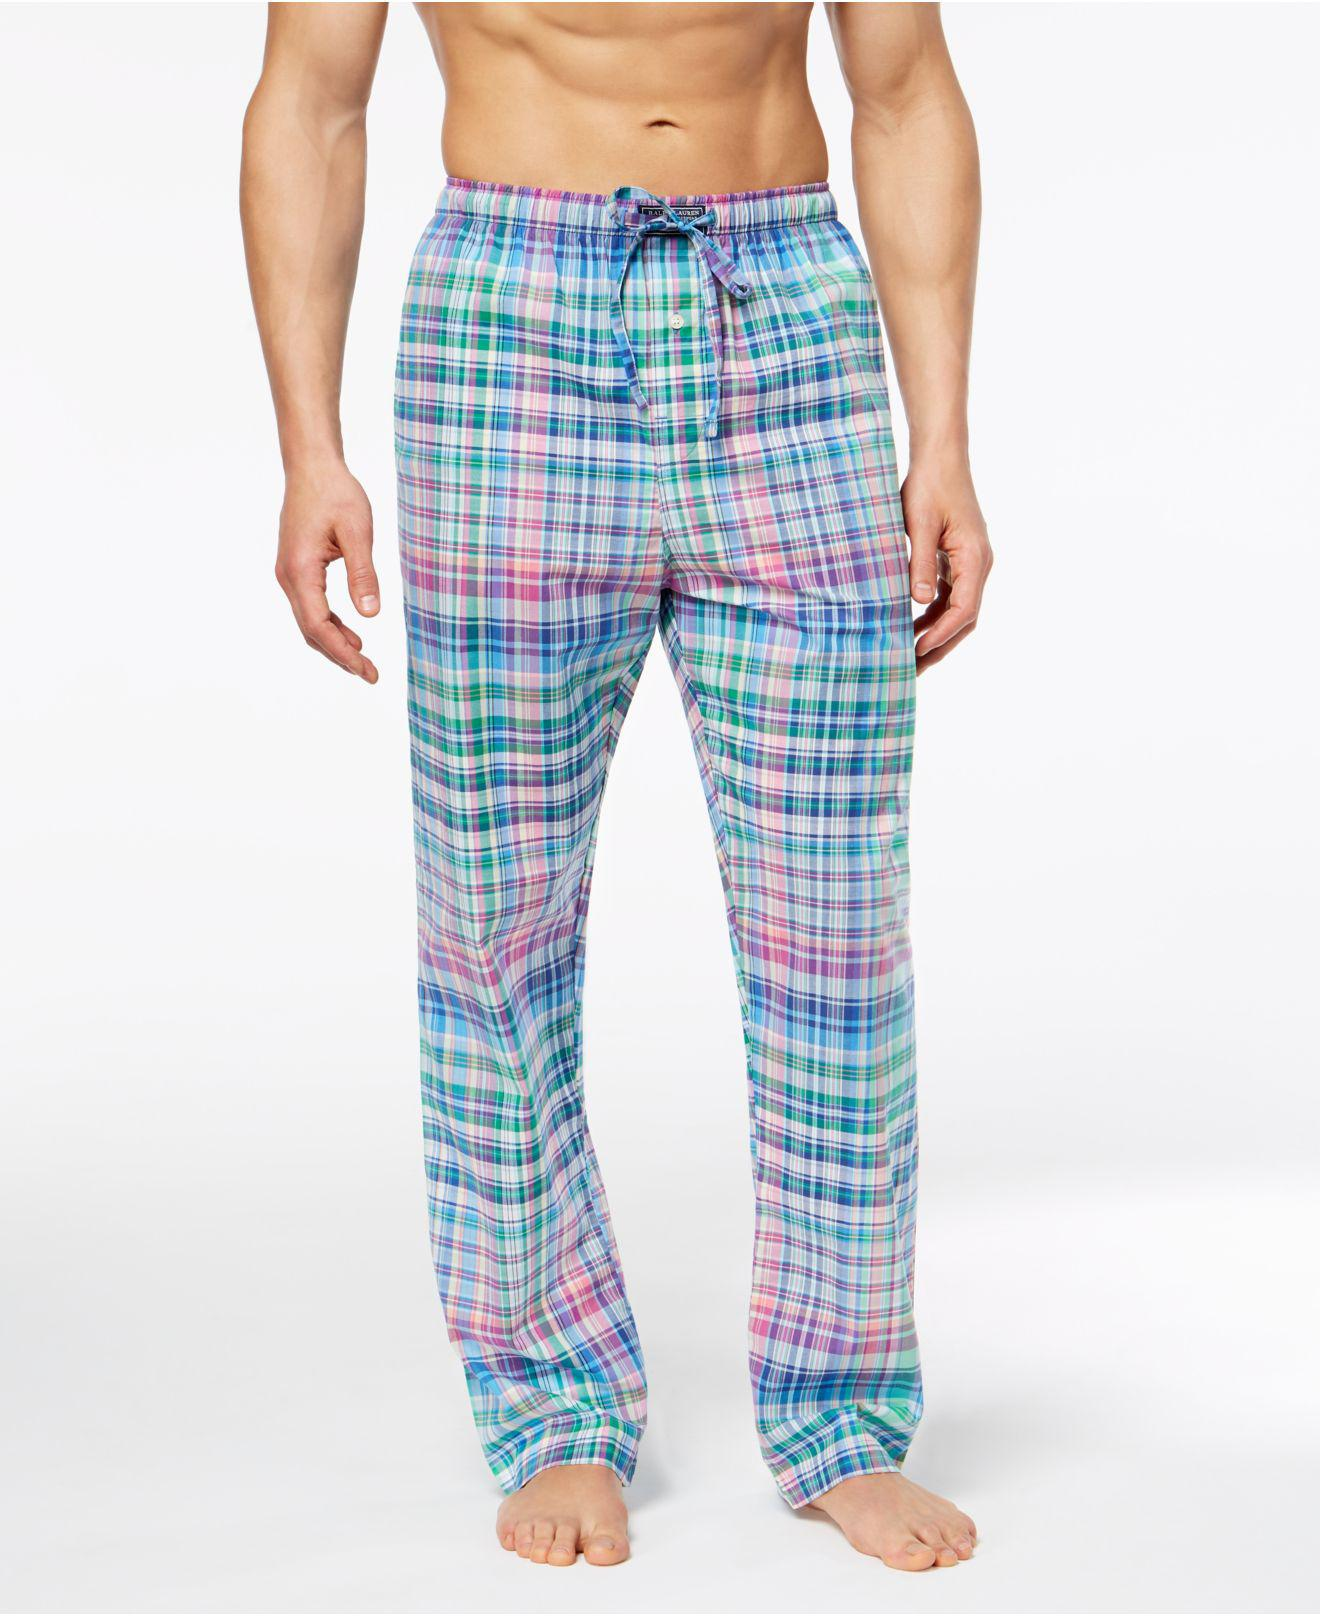 b5718f5ca25d Lyst - Polo Ralph Lauren Woven Plaid Pajama Pants in Blue for Men